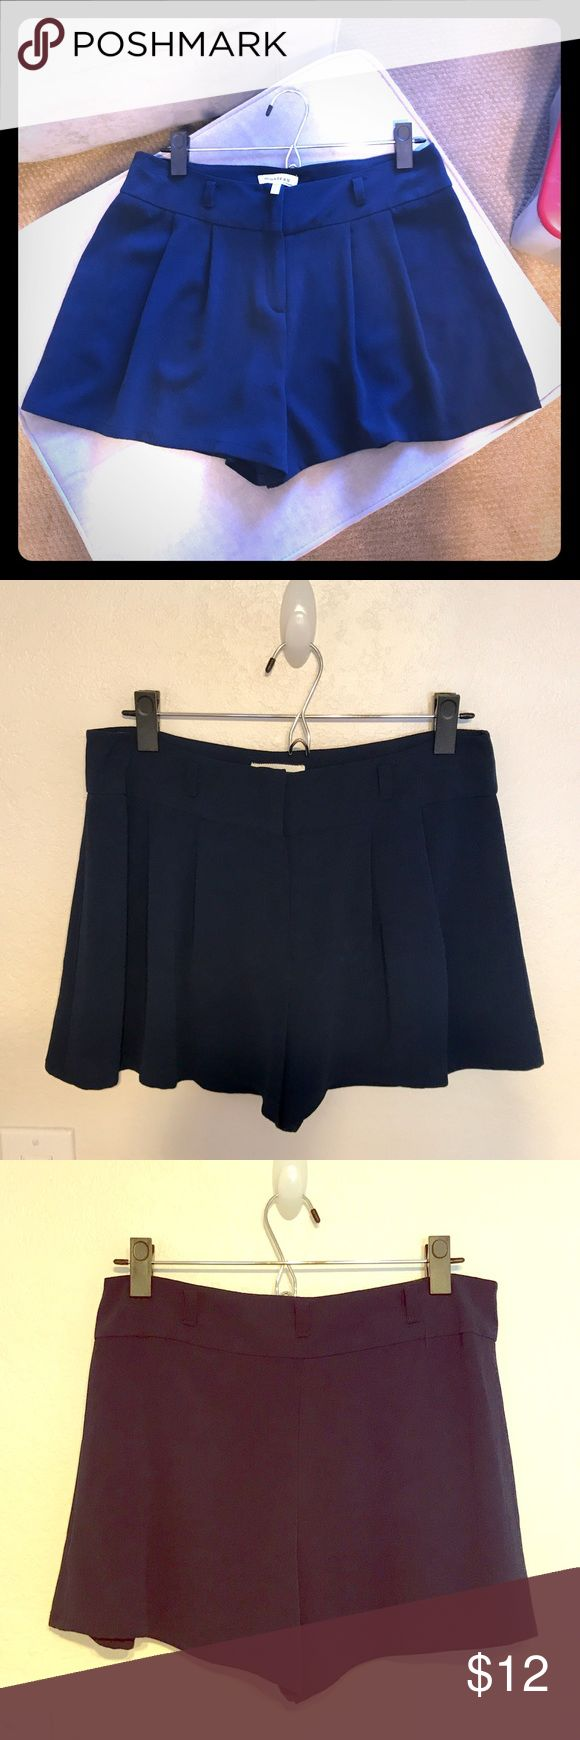 Flowey shorts Cute high waisted shorts. Light dress pants like material. This can totally be worn with leggings and a top tucked in for a more dressed up look or with just a crop top for a more casual look! Navy blue color Monteau Shorts Skorts